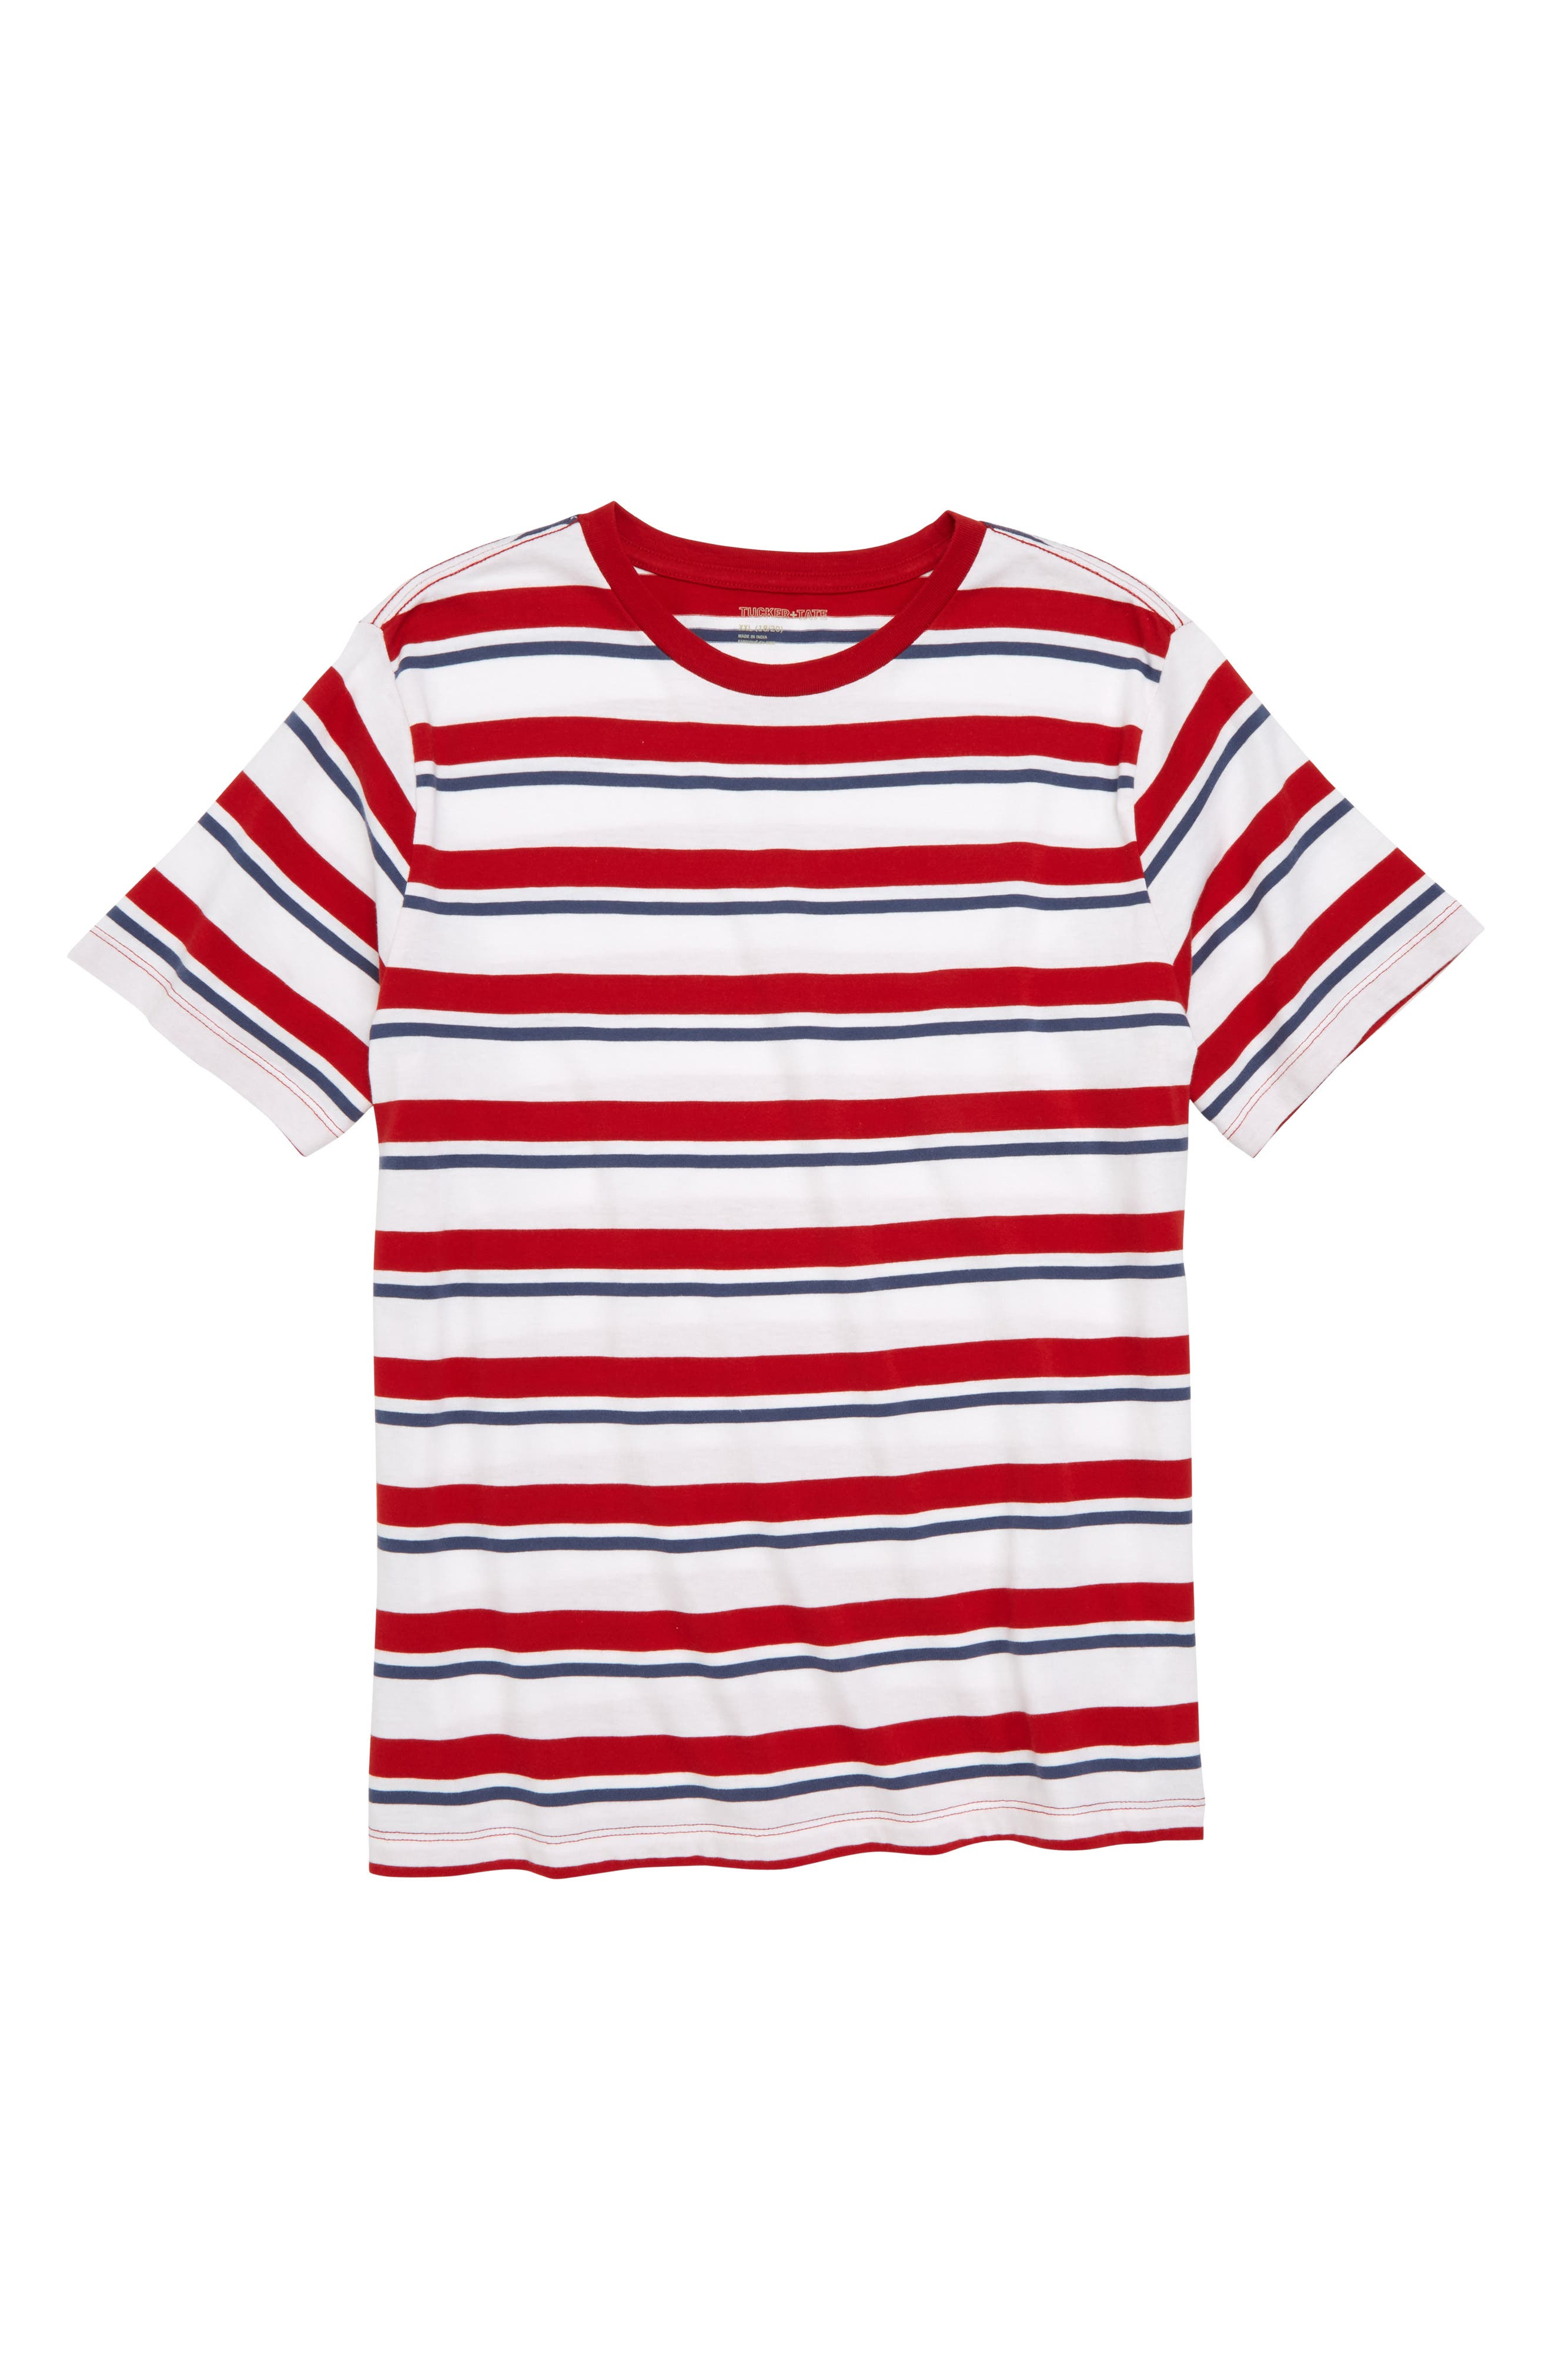 Repp Stripe T-Shirt,                             Main thumbnail 1, color,                             Red Samba- White Stripe